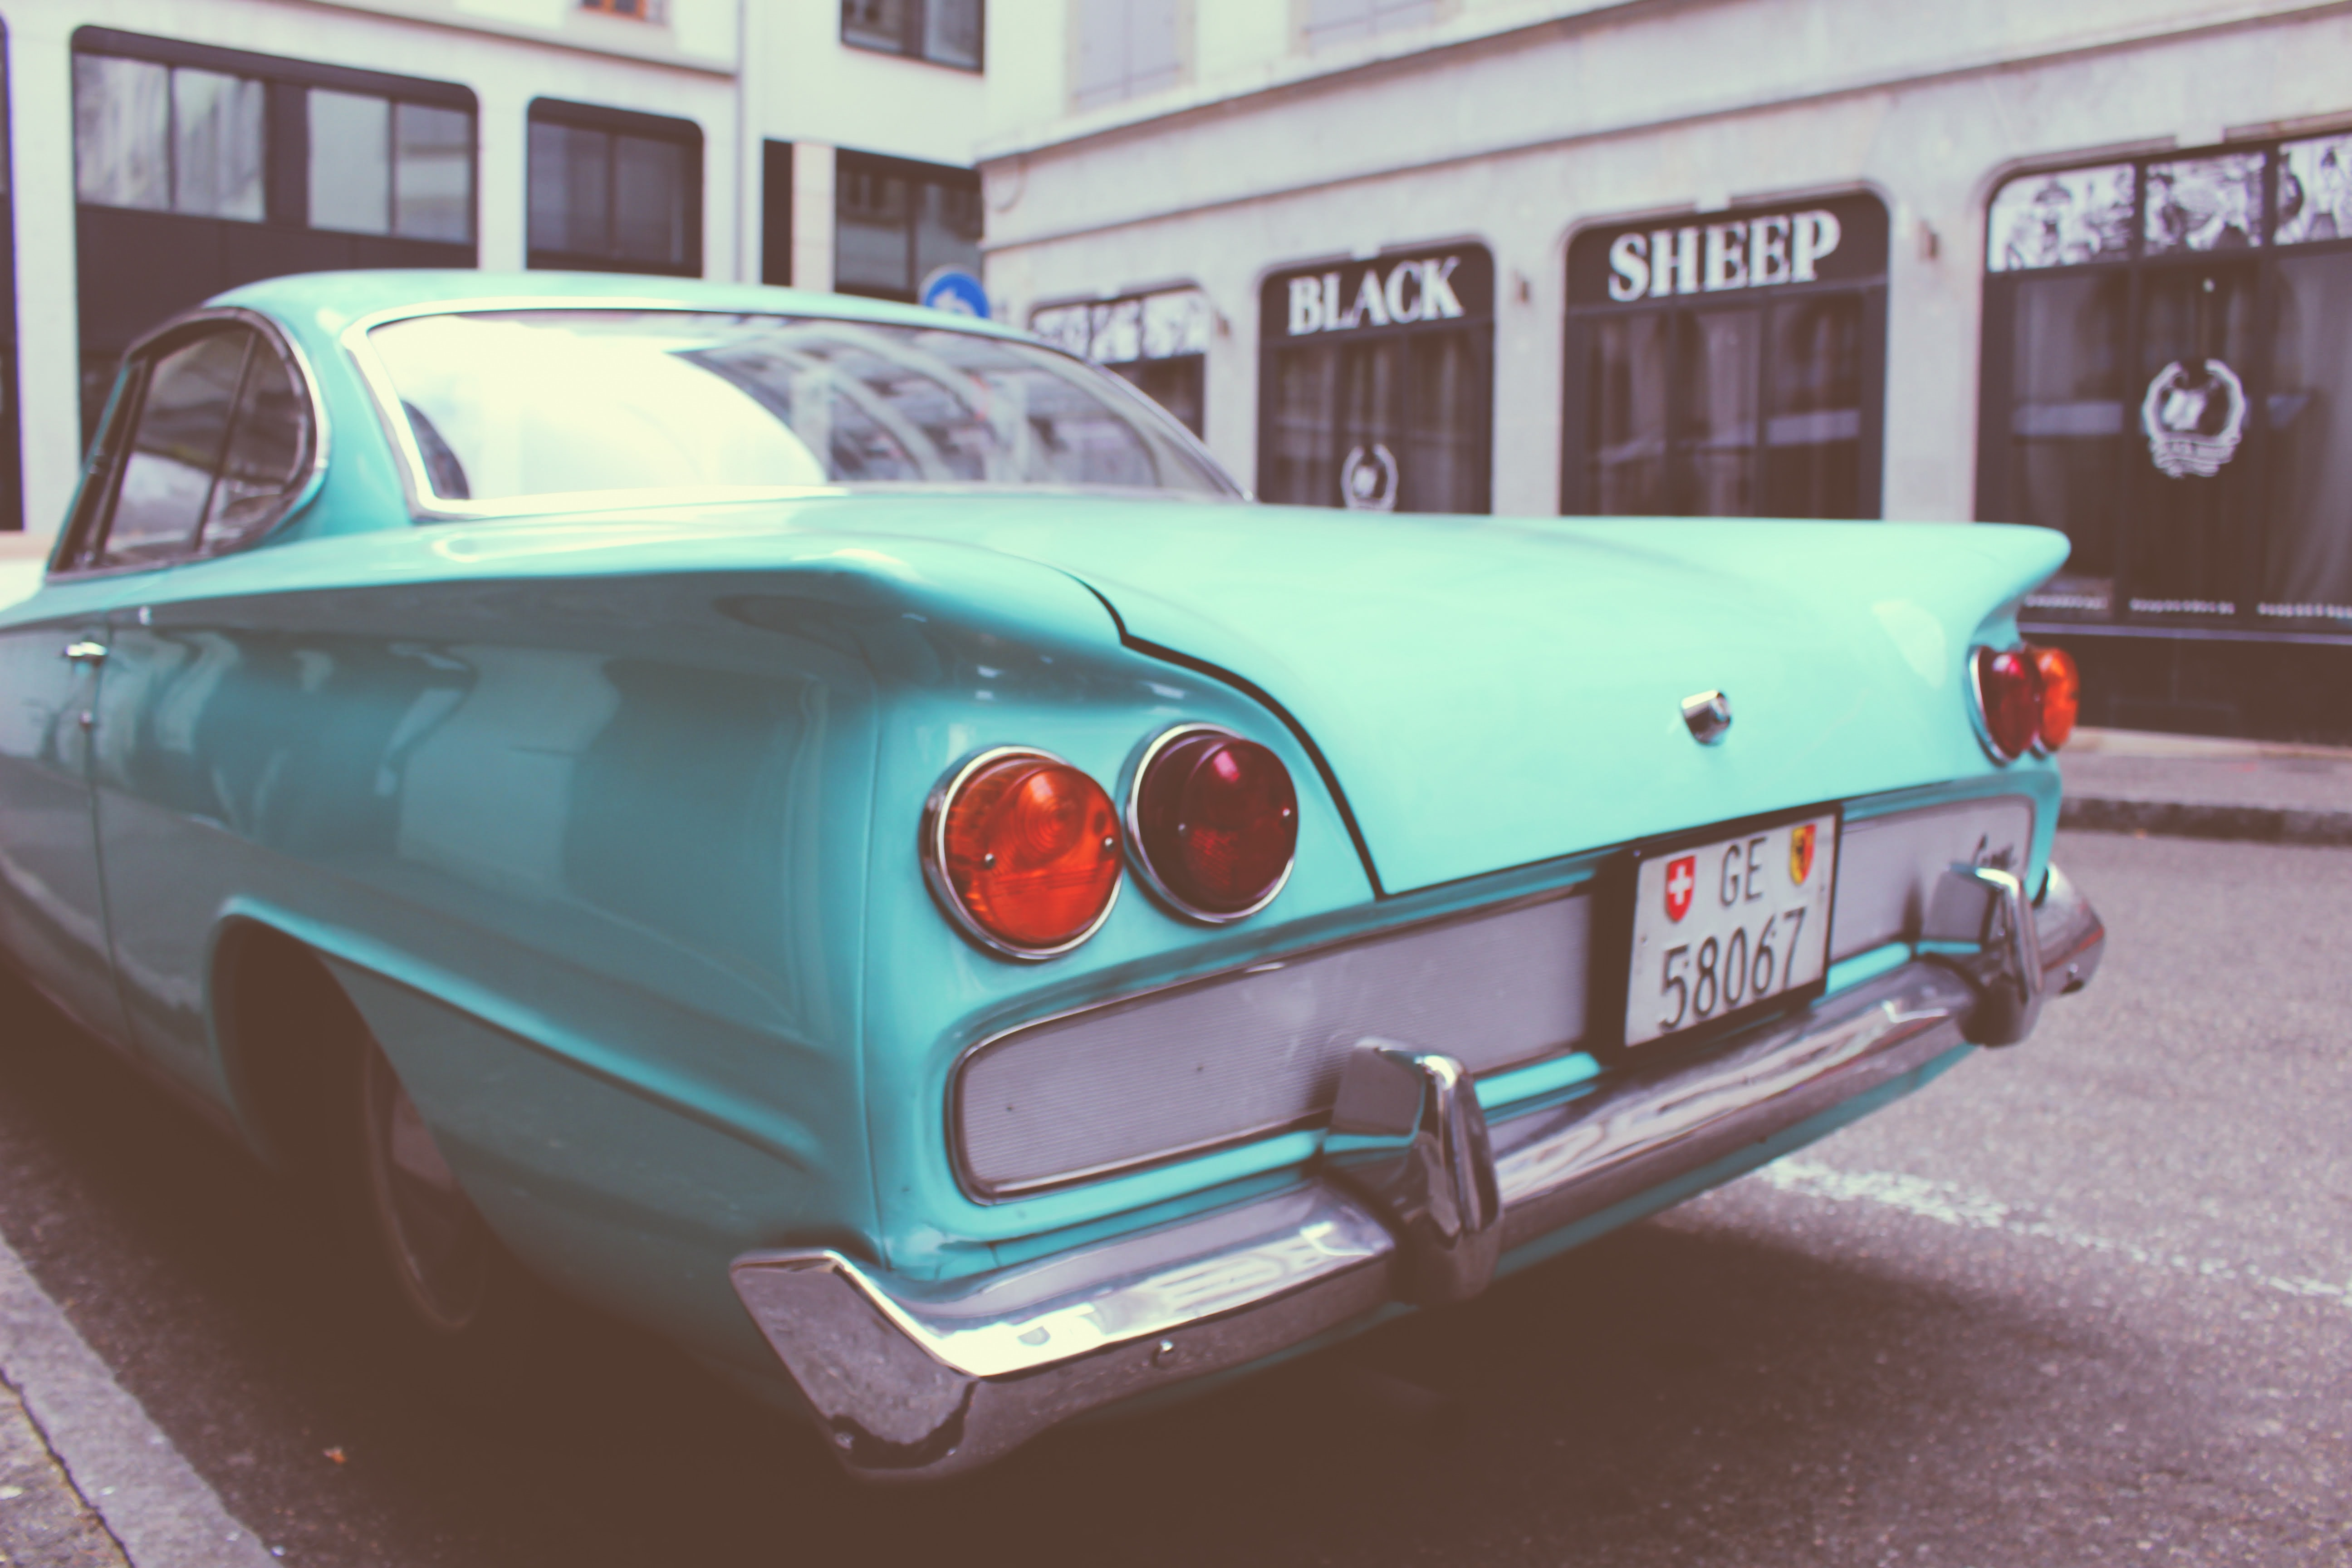 Turquoise vintage car in a moody tone.